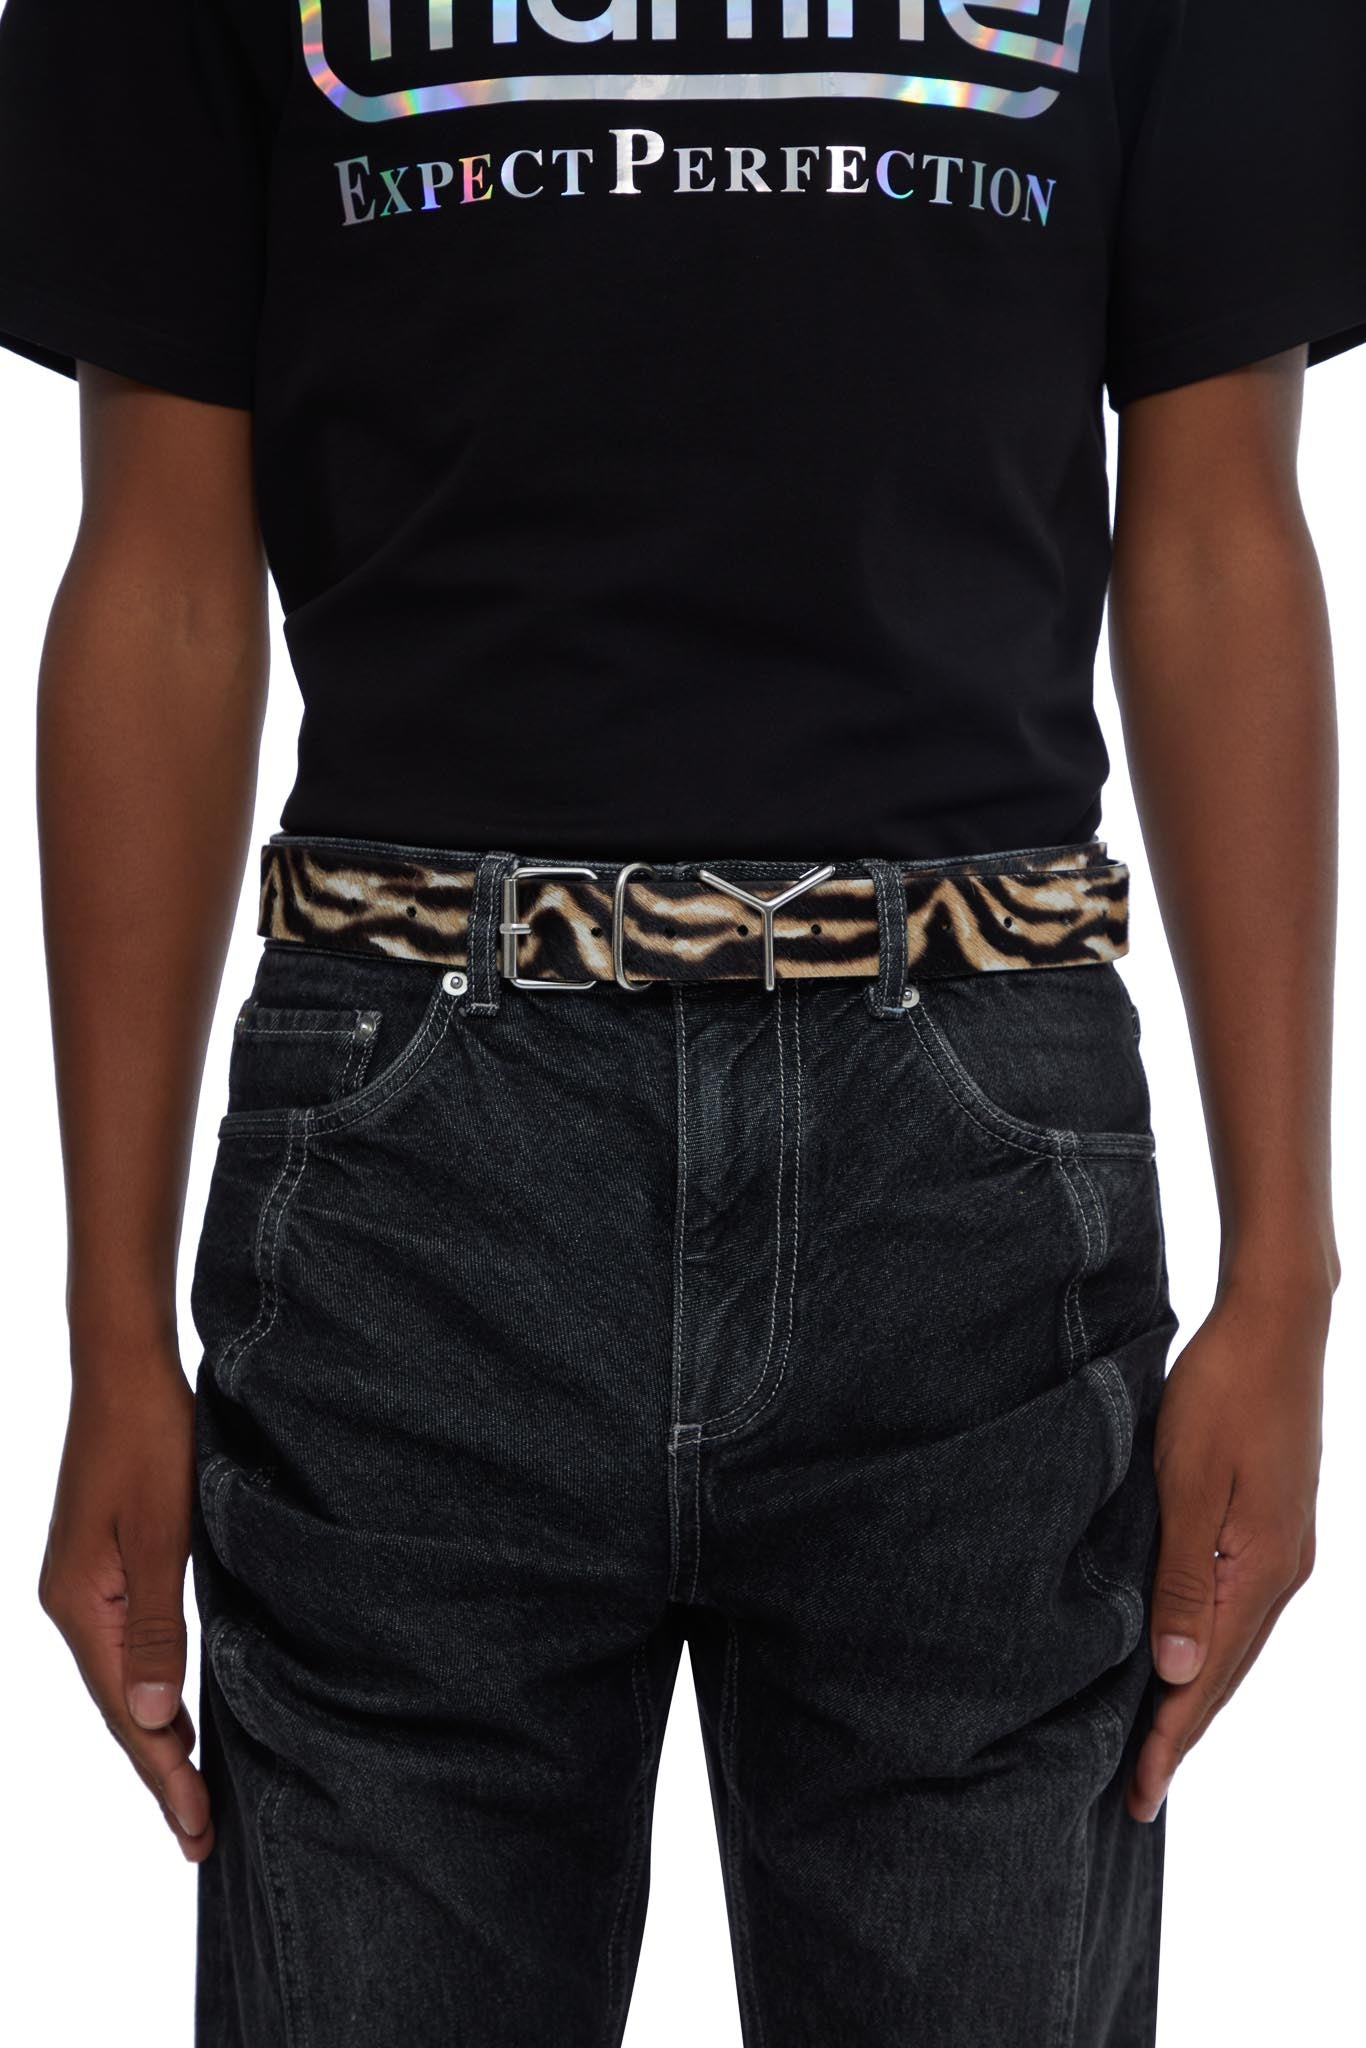 y/project, classic y-belt, TIGER PRINT, BELT1Y -S19 S19, BELT, AW20, BELT, LEATHER, MENS, METAL